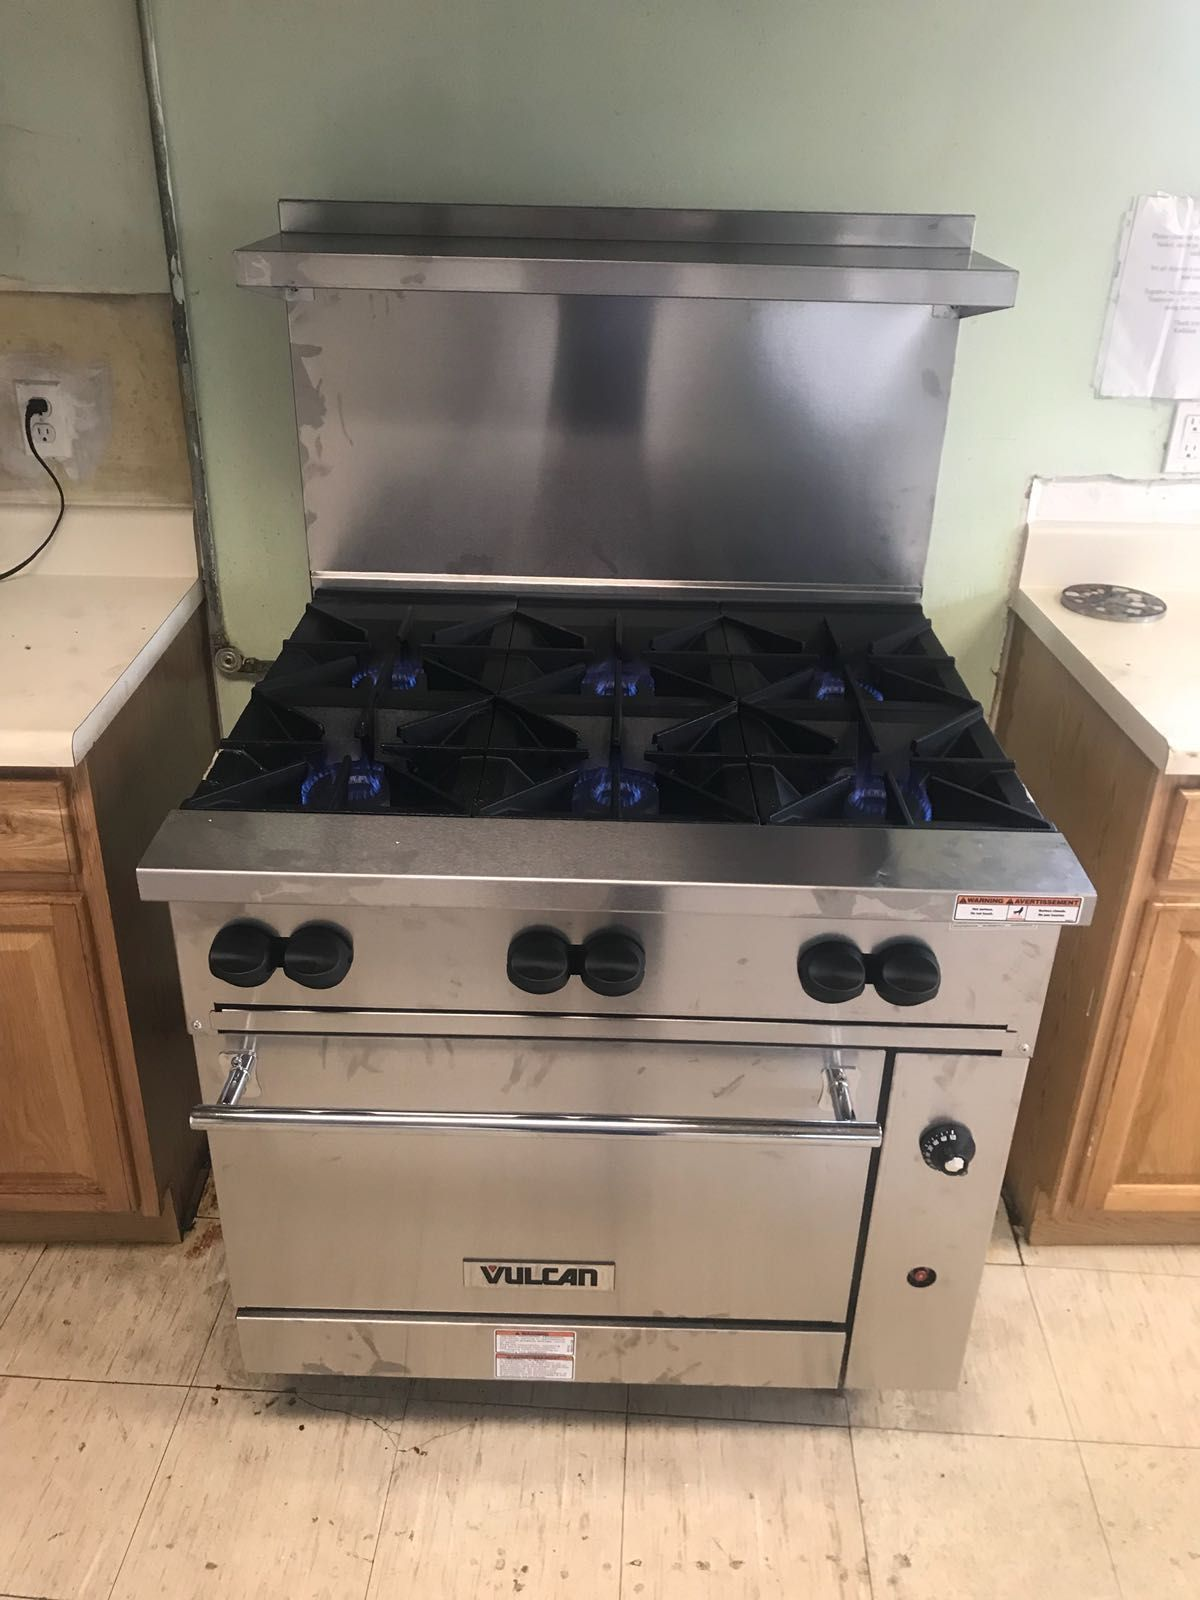 vulcan kitchen equipment virtual remodel looking for a commercial range that can handle heavy load try culinarydepot commercialkitchen restaurantequipment 6burners stainlesssteel stove oven